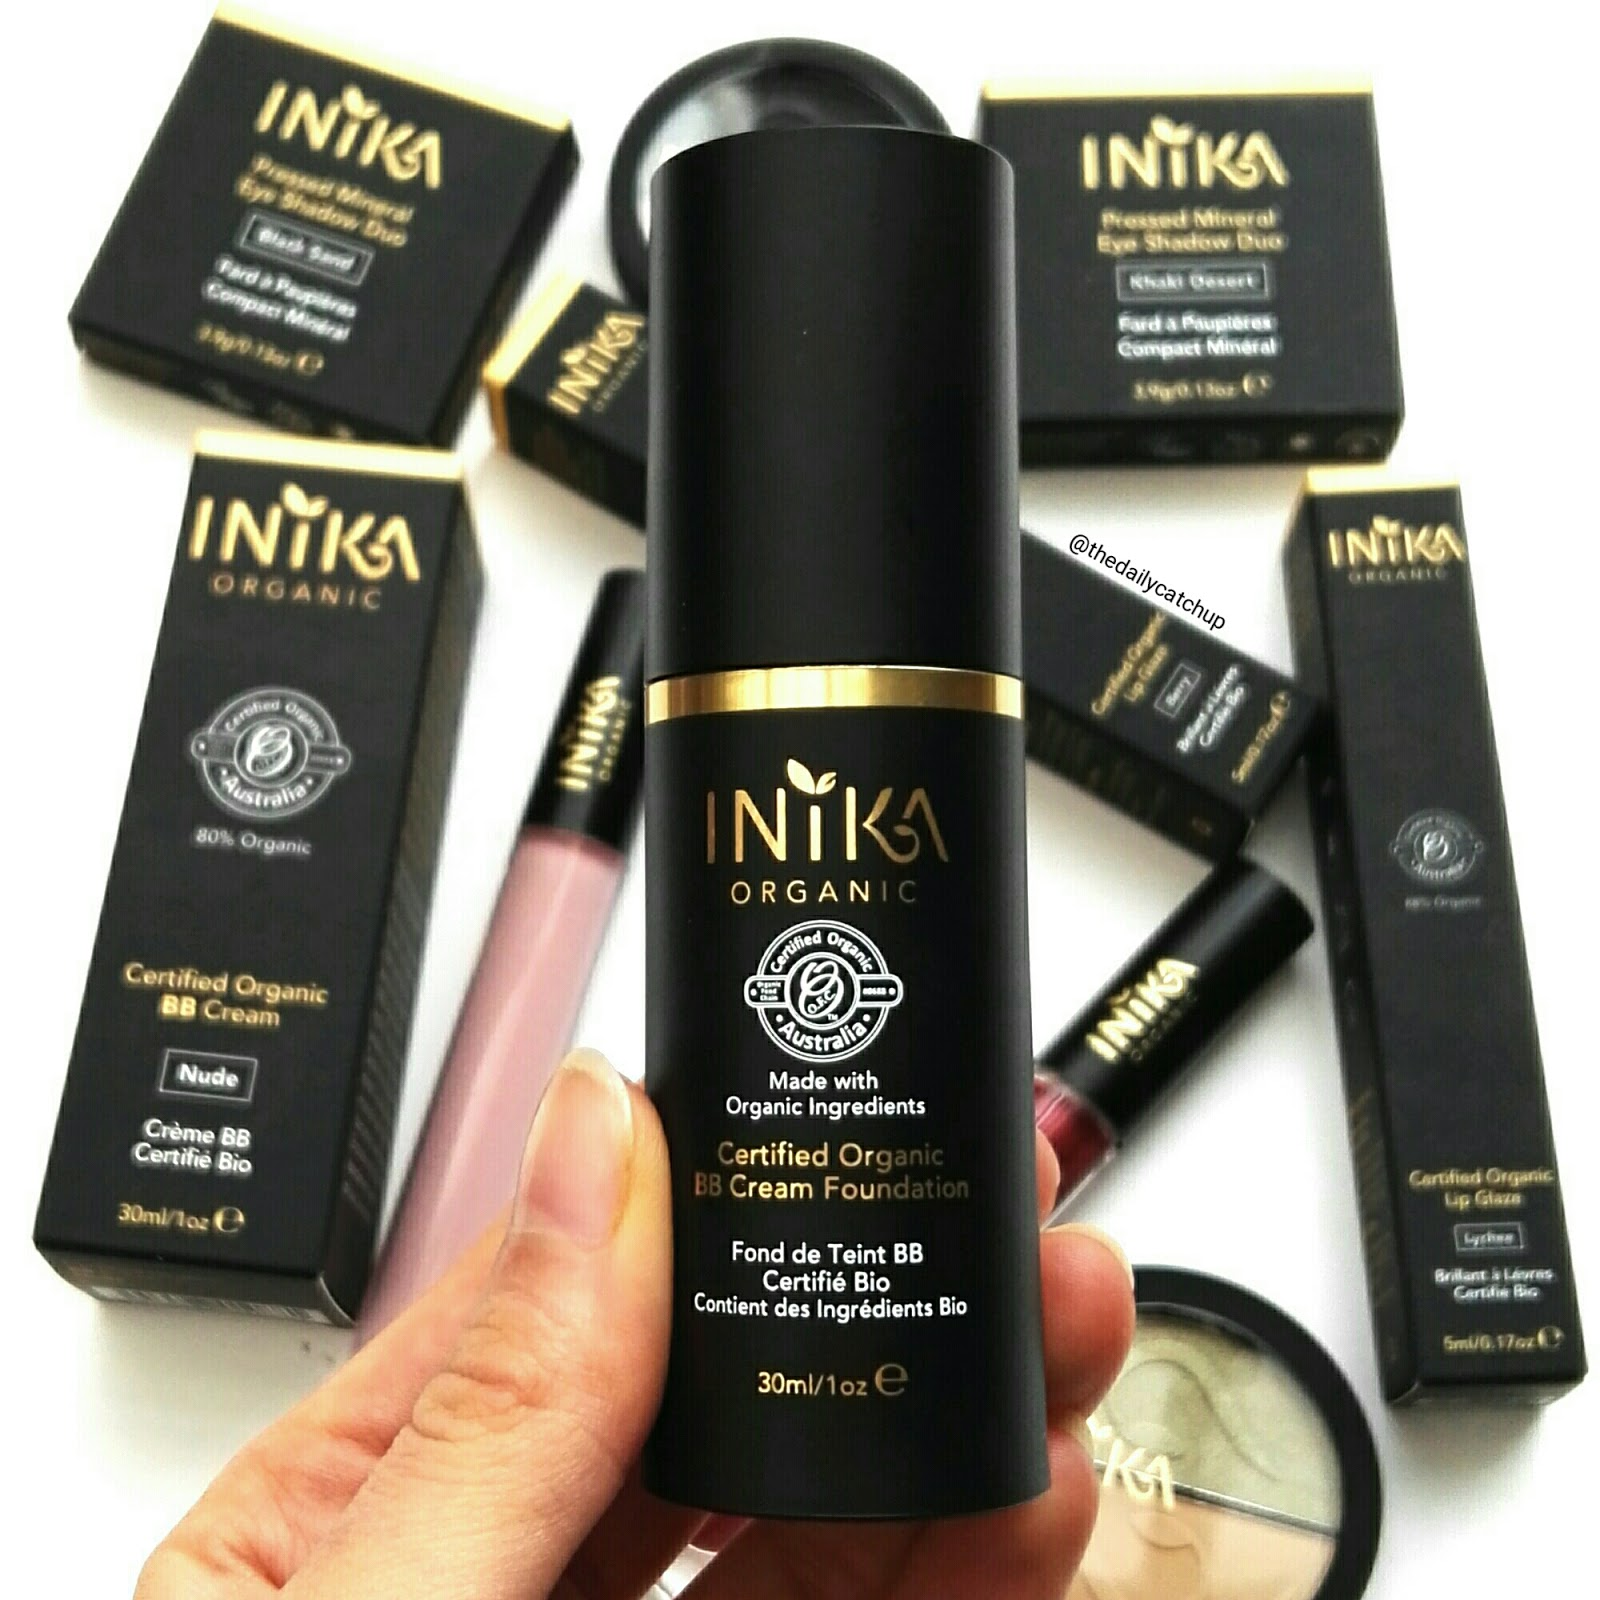 FREE VEGAN MAKE-OVER - Get party season ready with INIKA Organic